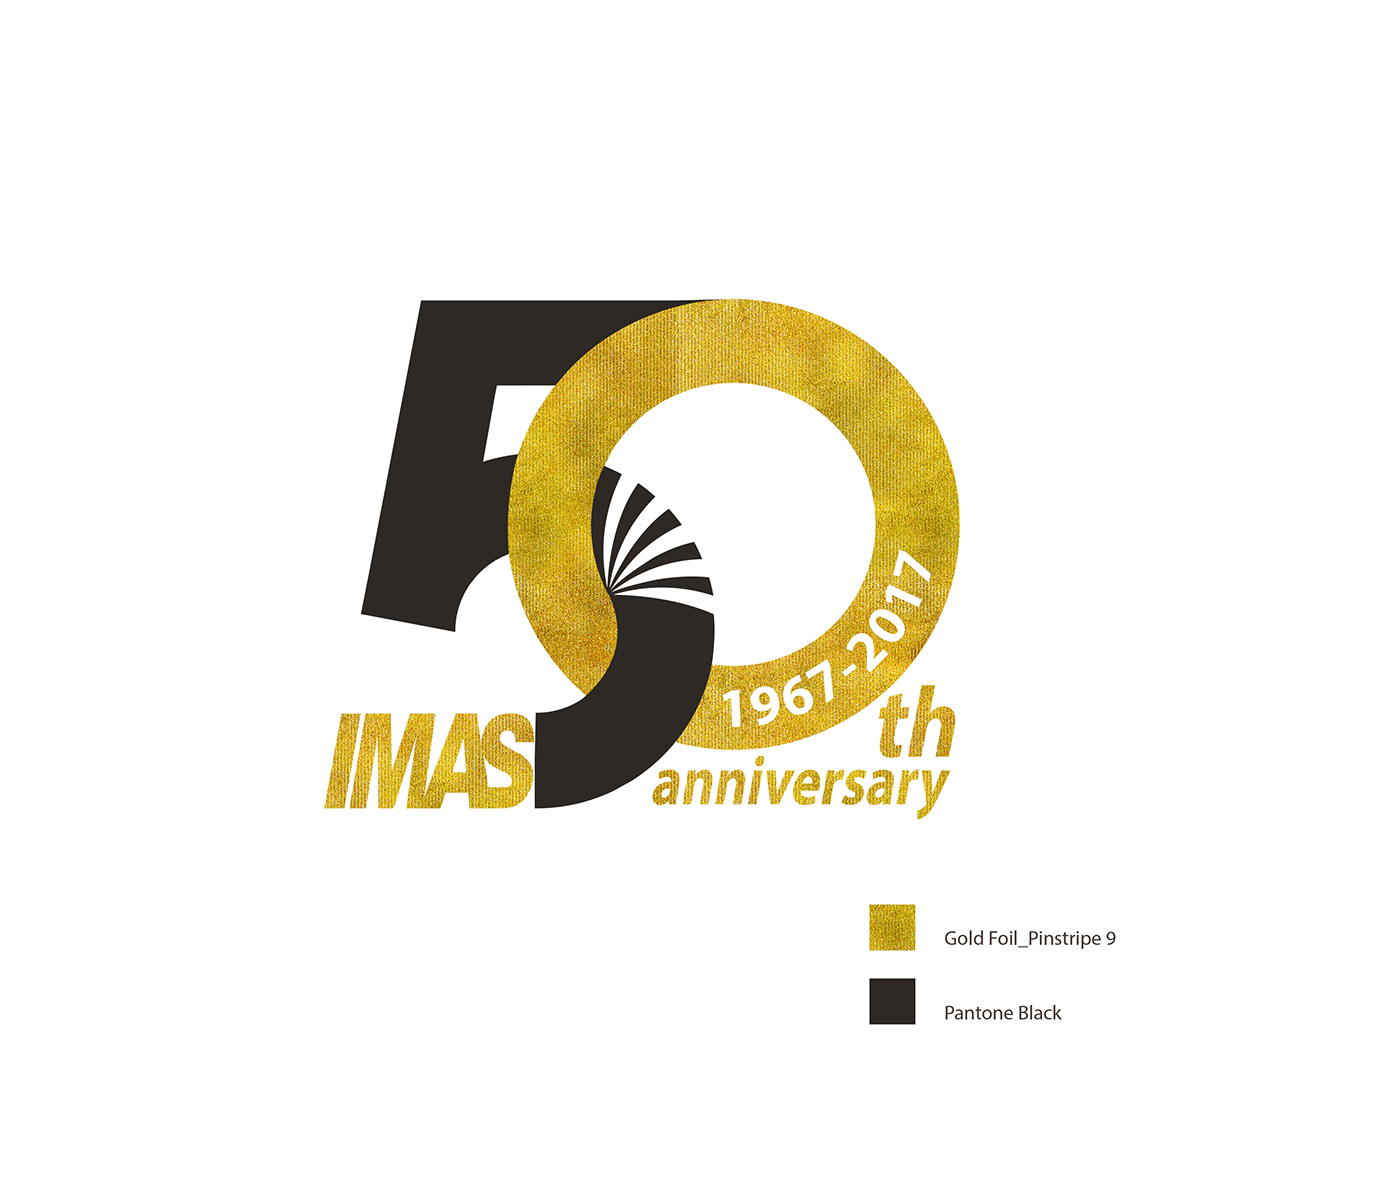 Imas 50th anniversary logo on behance work title imas 50th anniversary logo client international museum of art science award indigo design award 2018 bronze altavistaventures Image collections